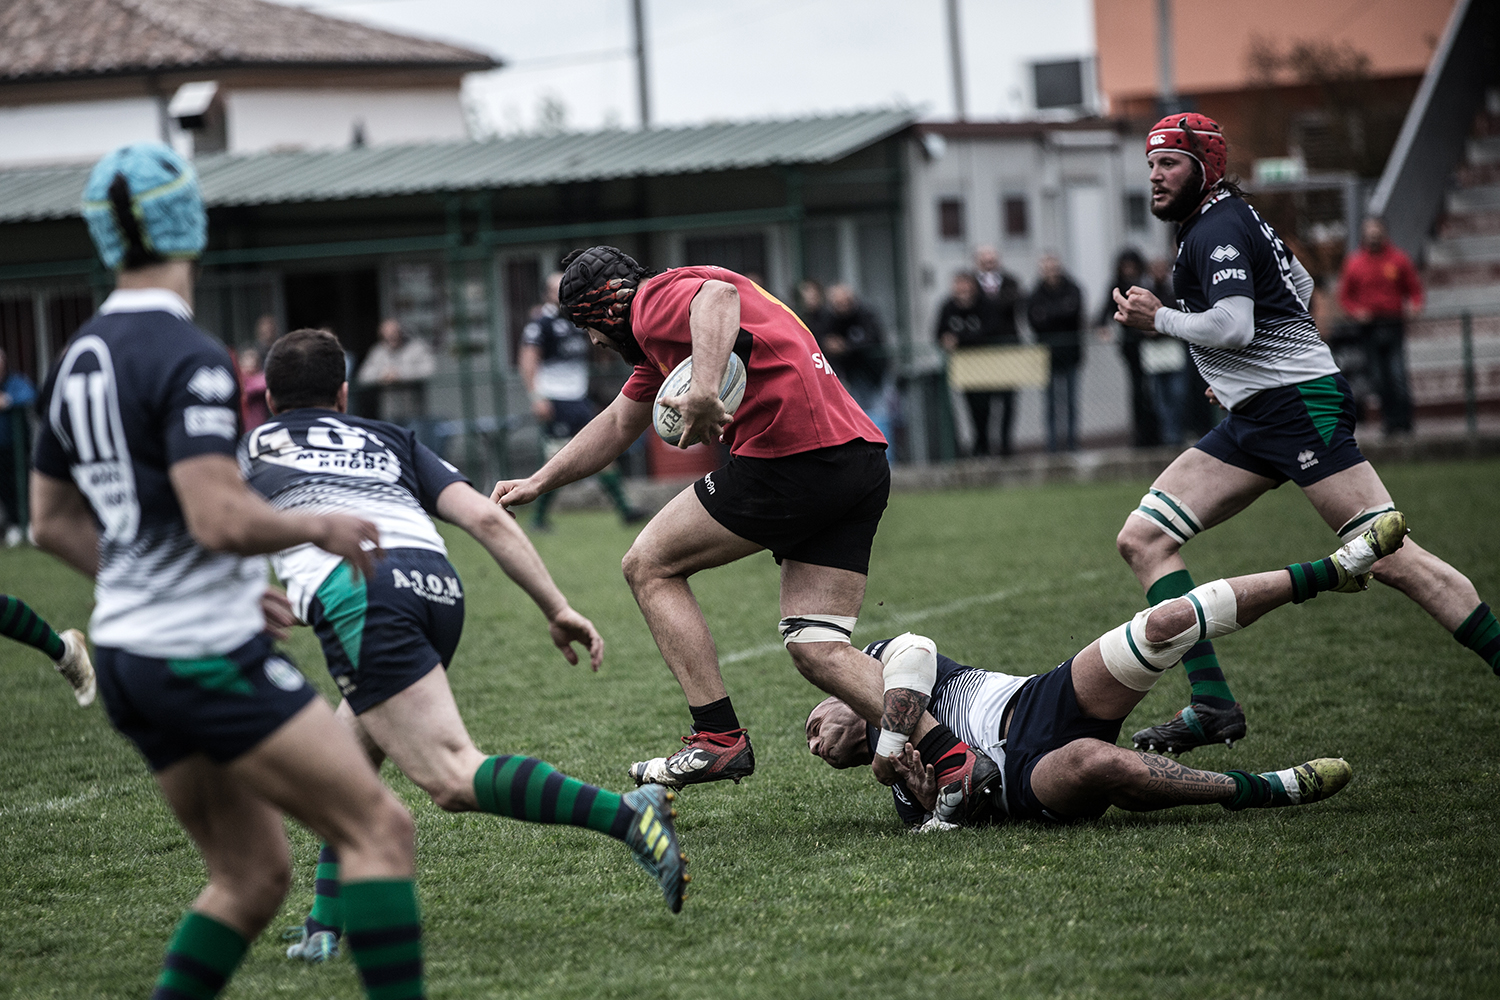 rugby_photograph_29.jpg